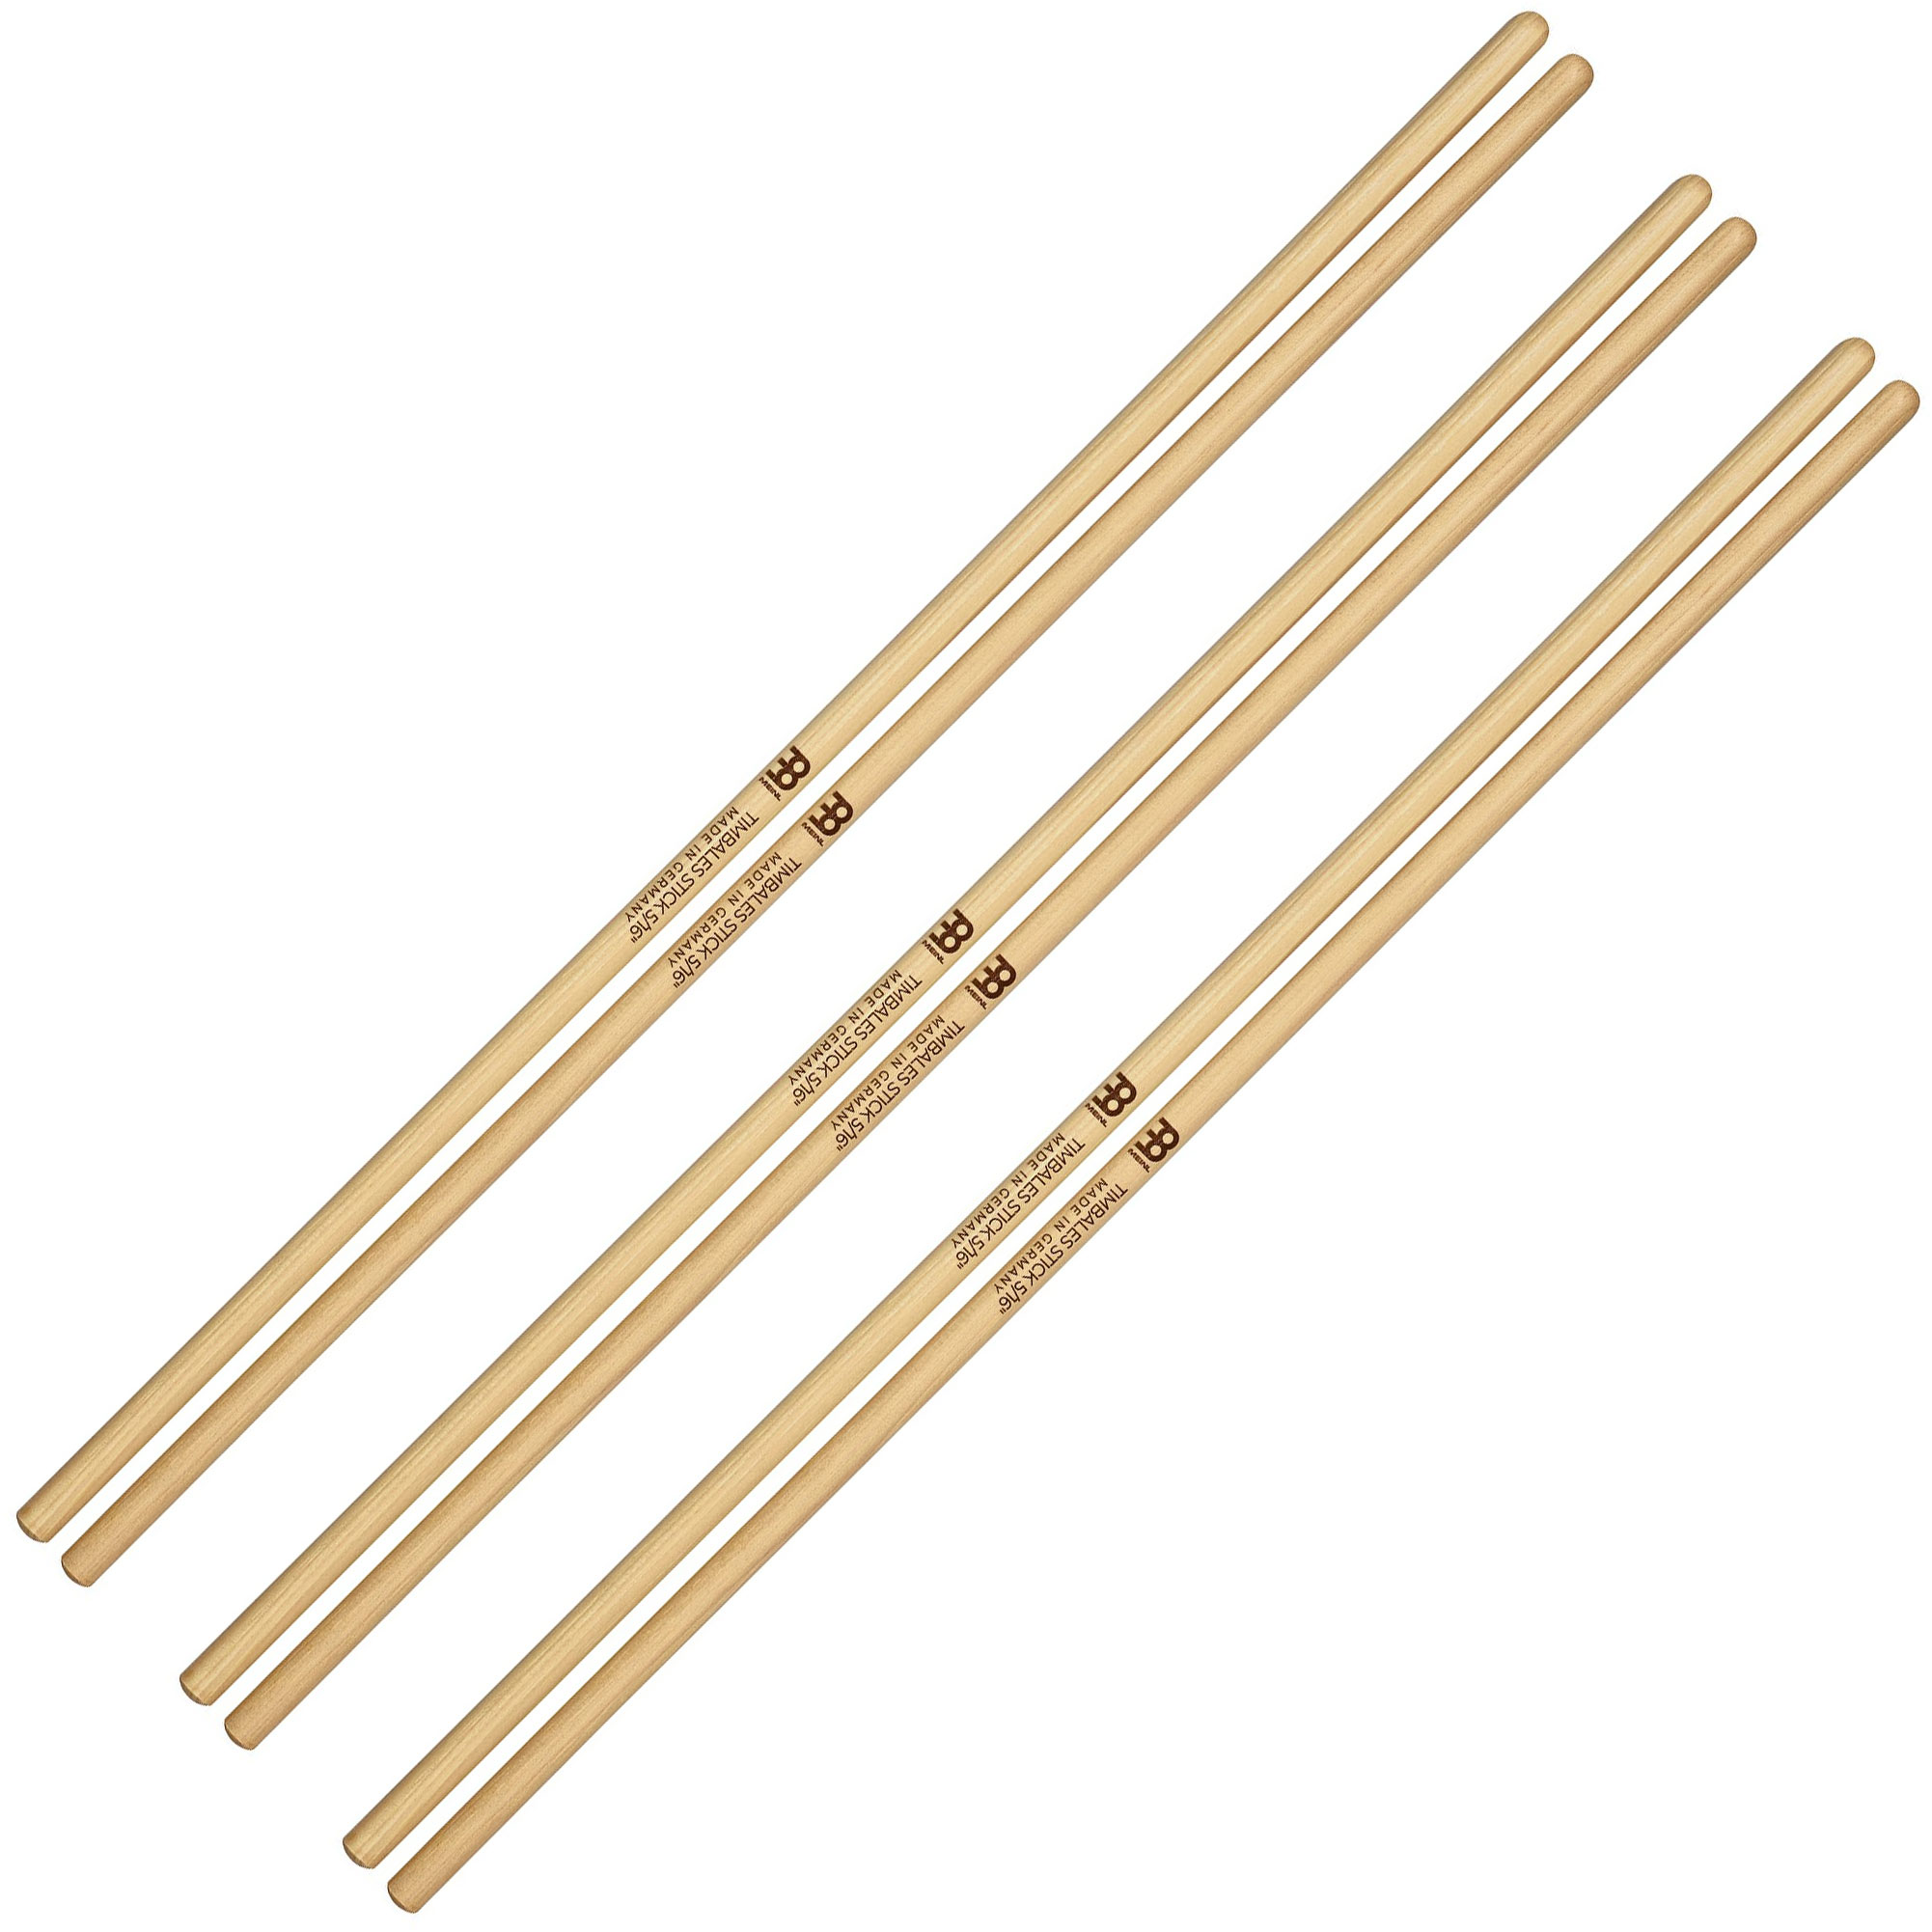 """Meinl 5/16"""" Hickory Timbales Sticks (3 Pairs)"""